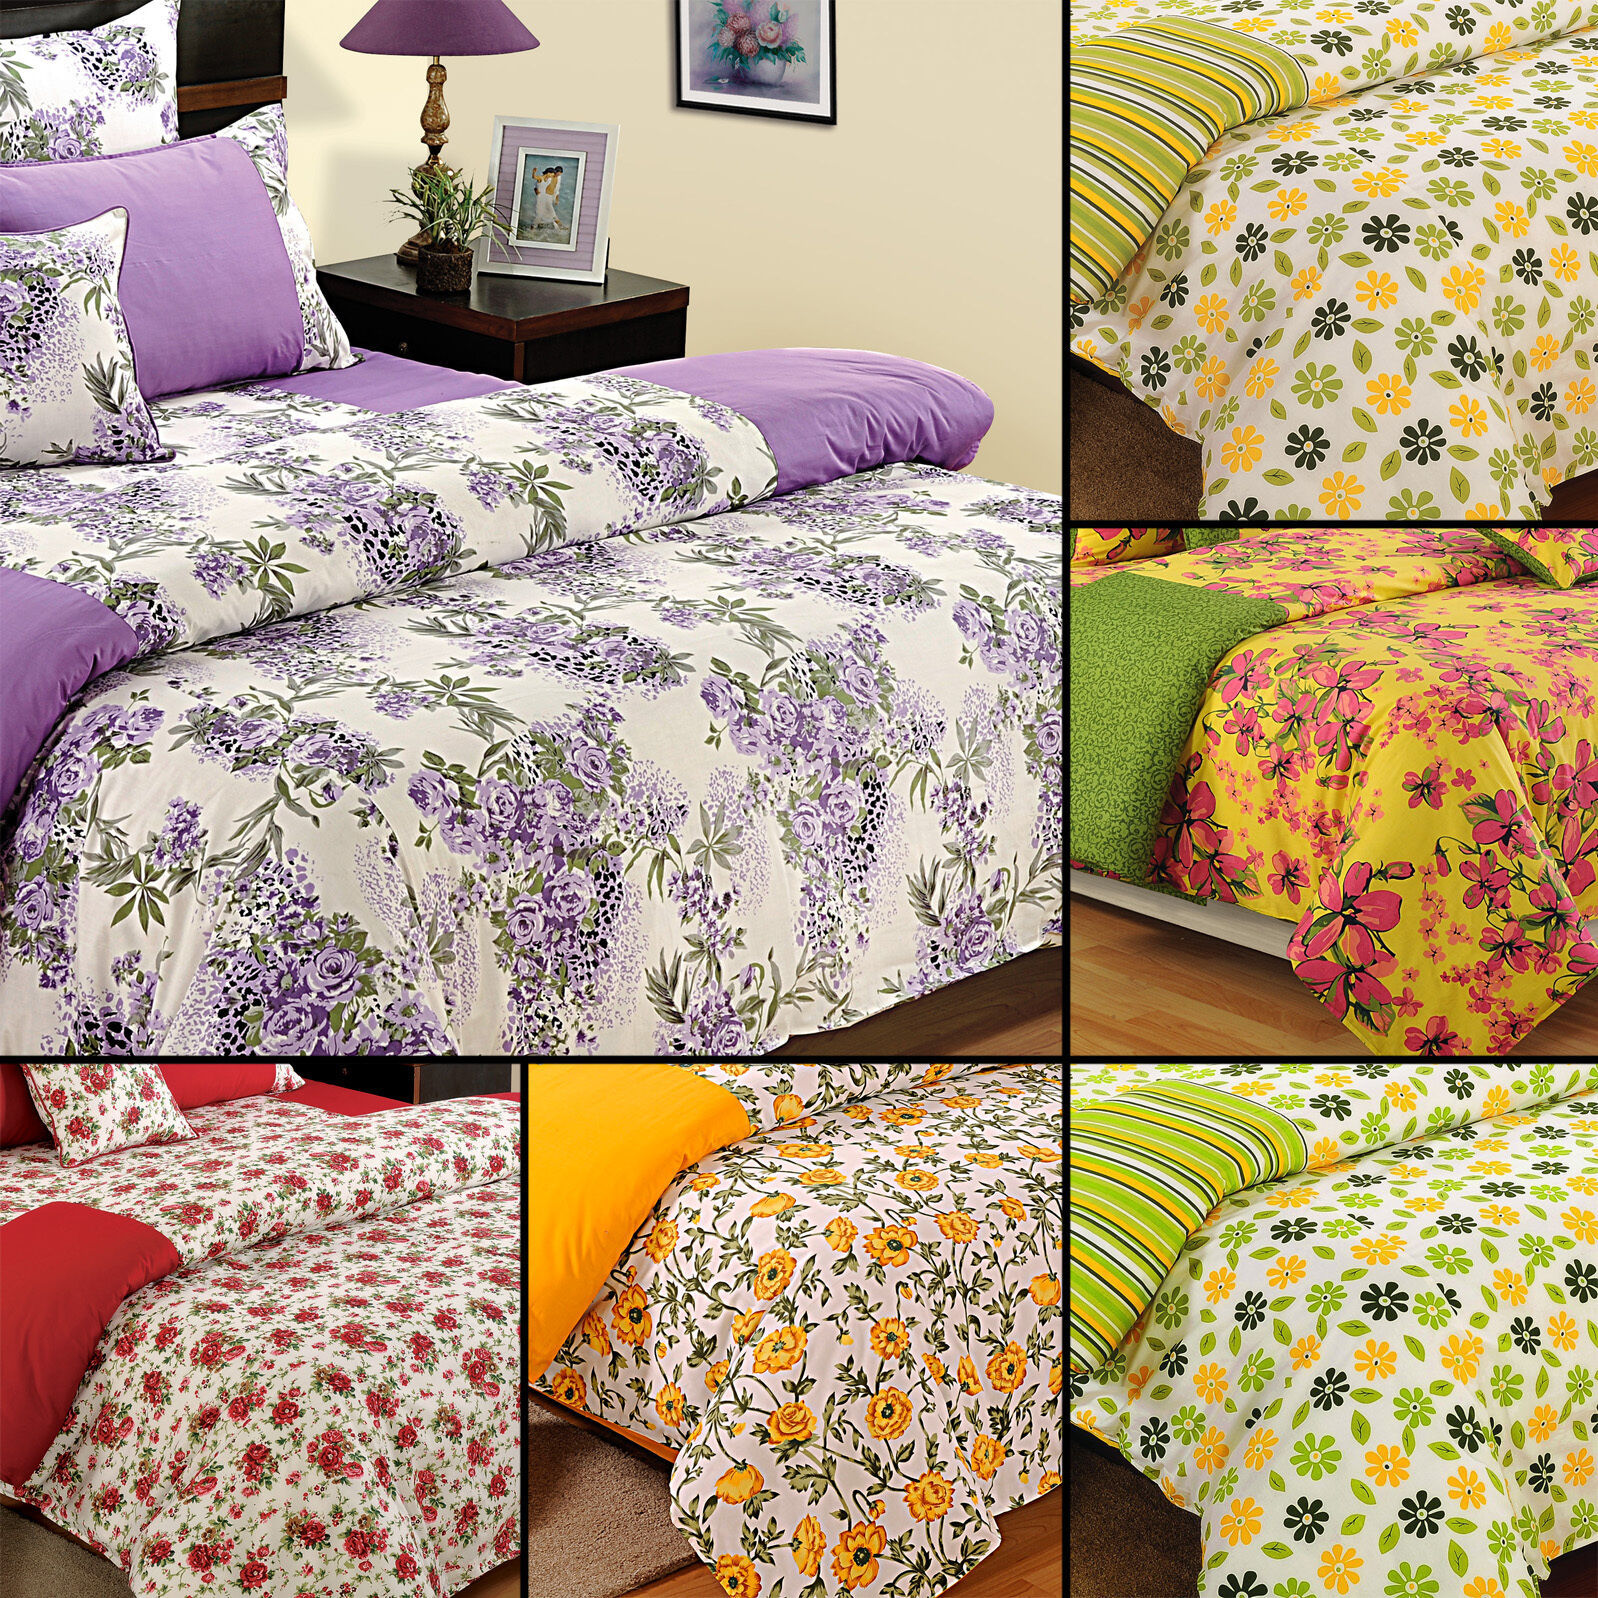 100% Cotton Elasticated Fitted Home Decorative Bed Sheet with Pillow Cover-113